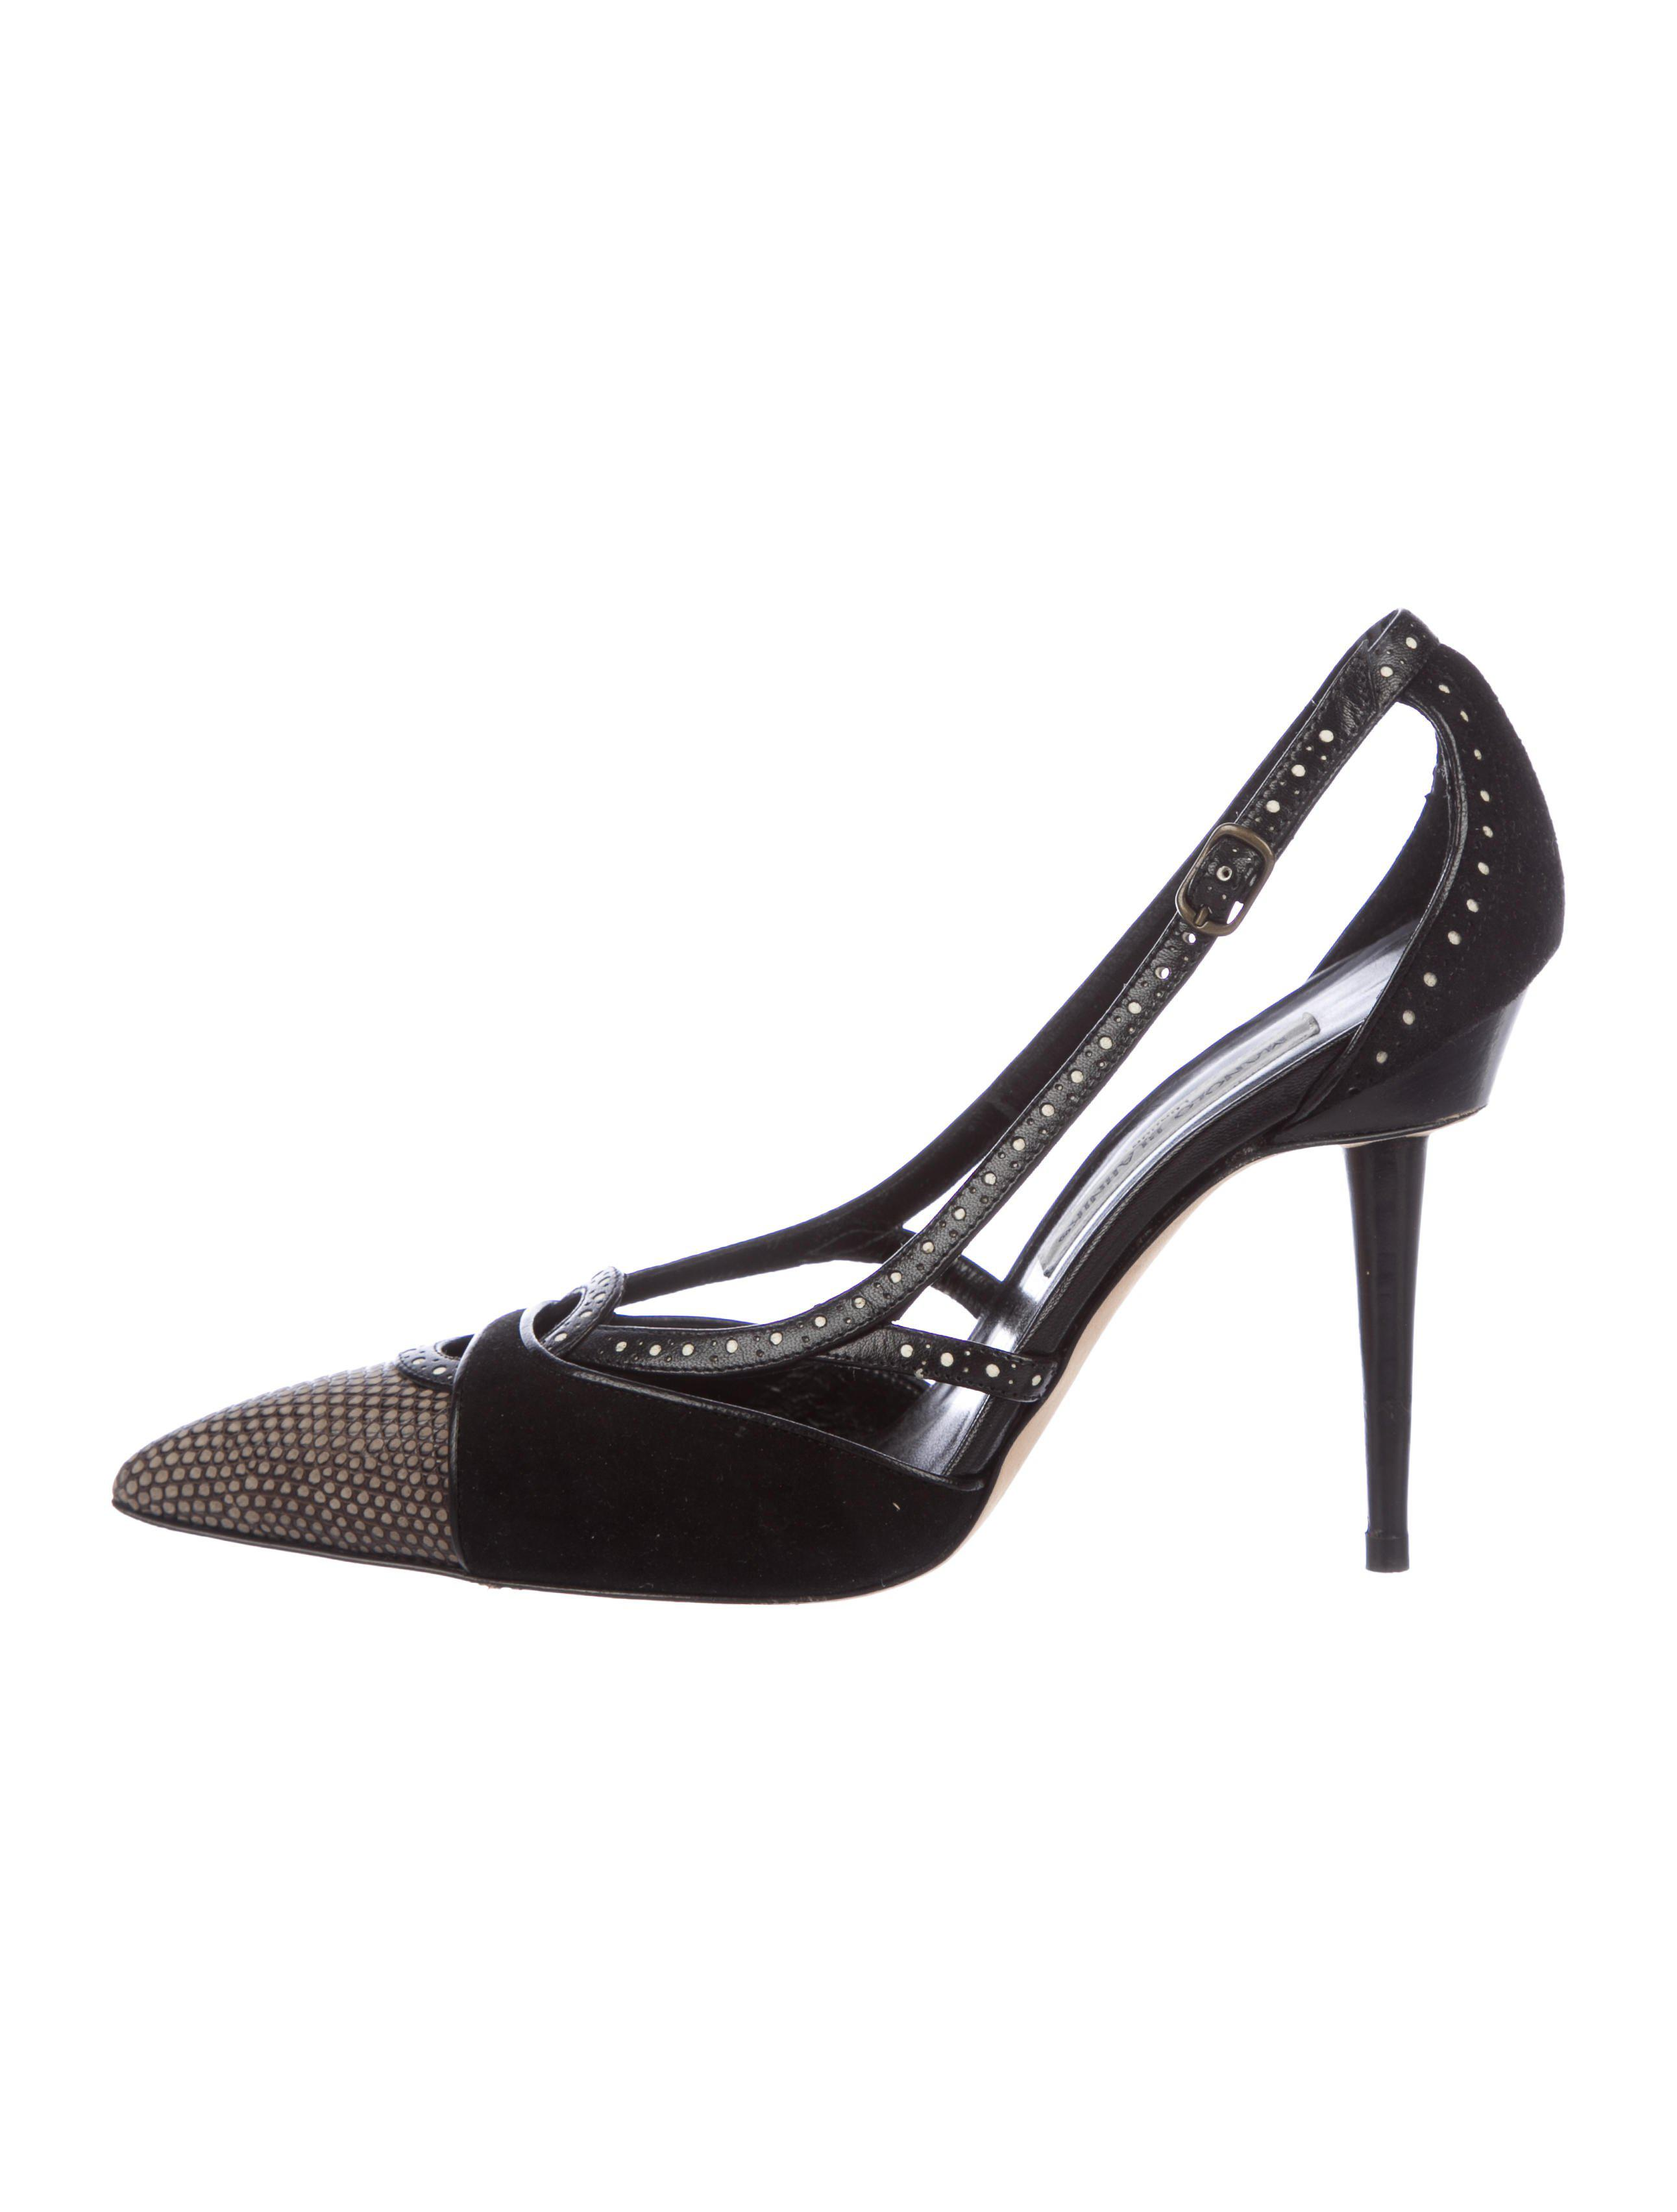 Manolo Blahnik Lizard-Trimmed Slingback Pumps outlet best place latest for sale buy cheap newest discount best seller low cost cheap price RMrOfOUu